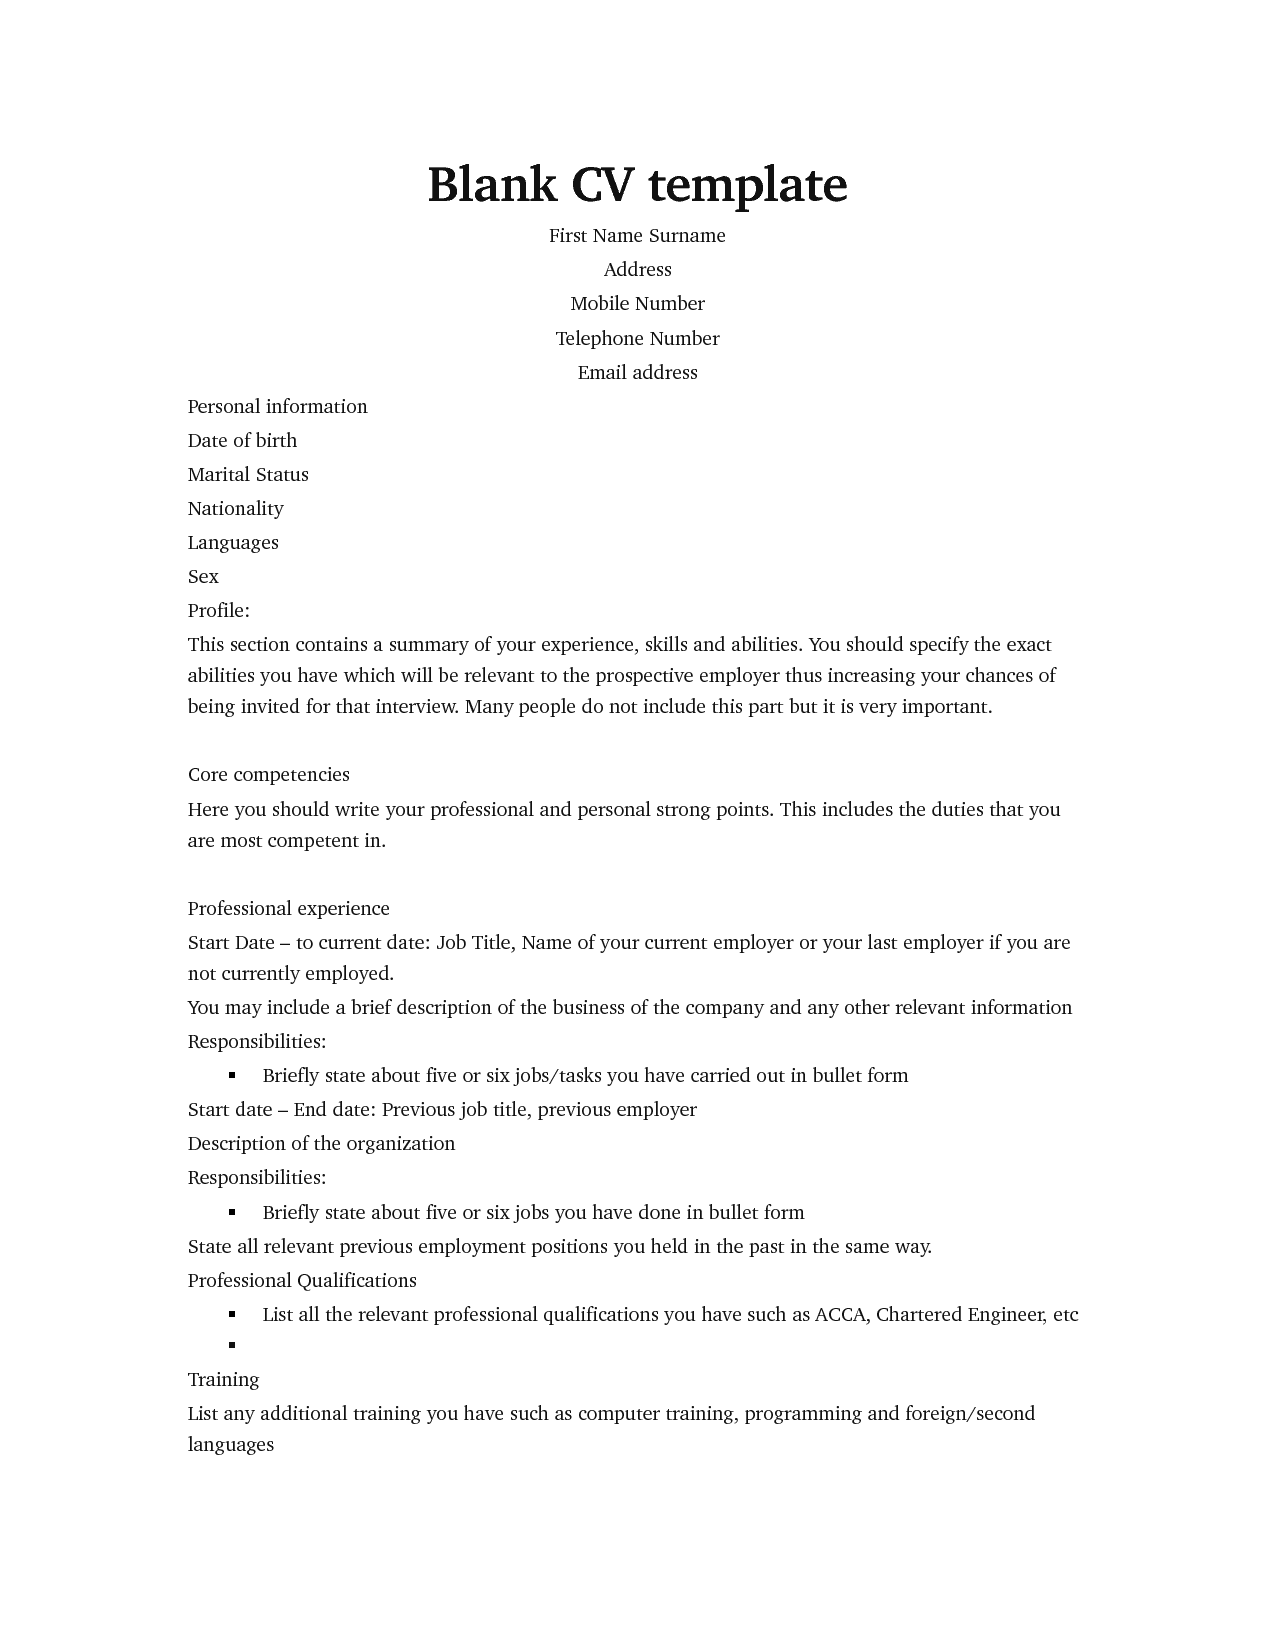 graduate cv tips and cv template uk  example for students first job